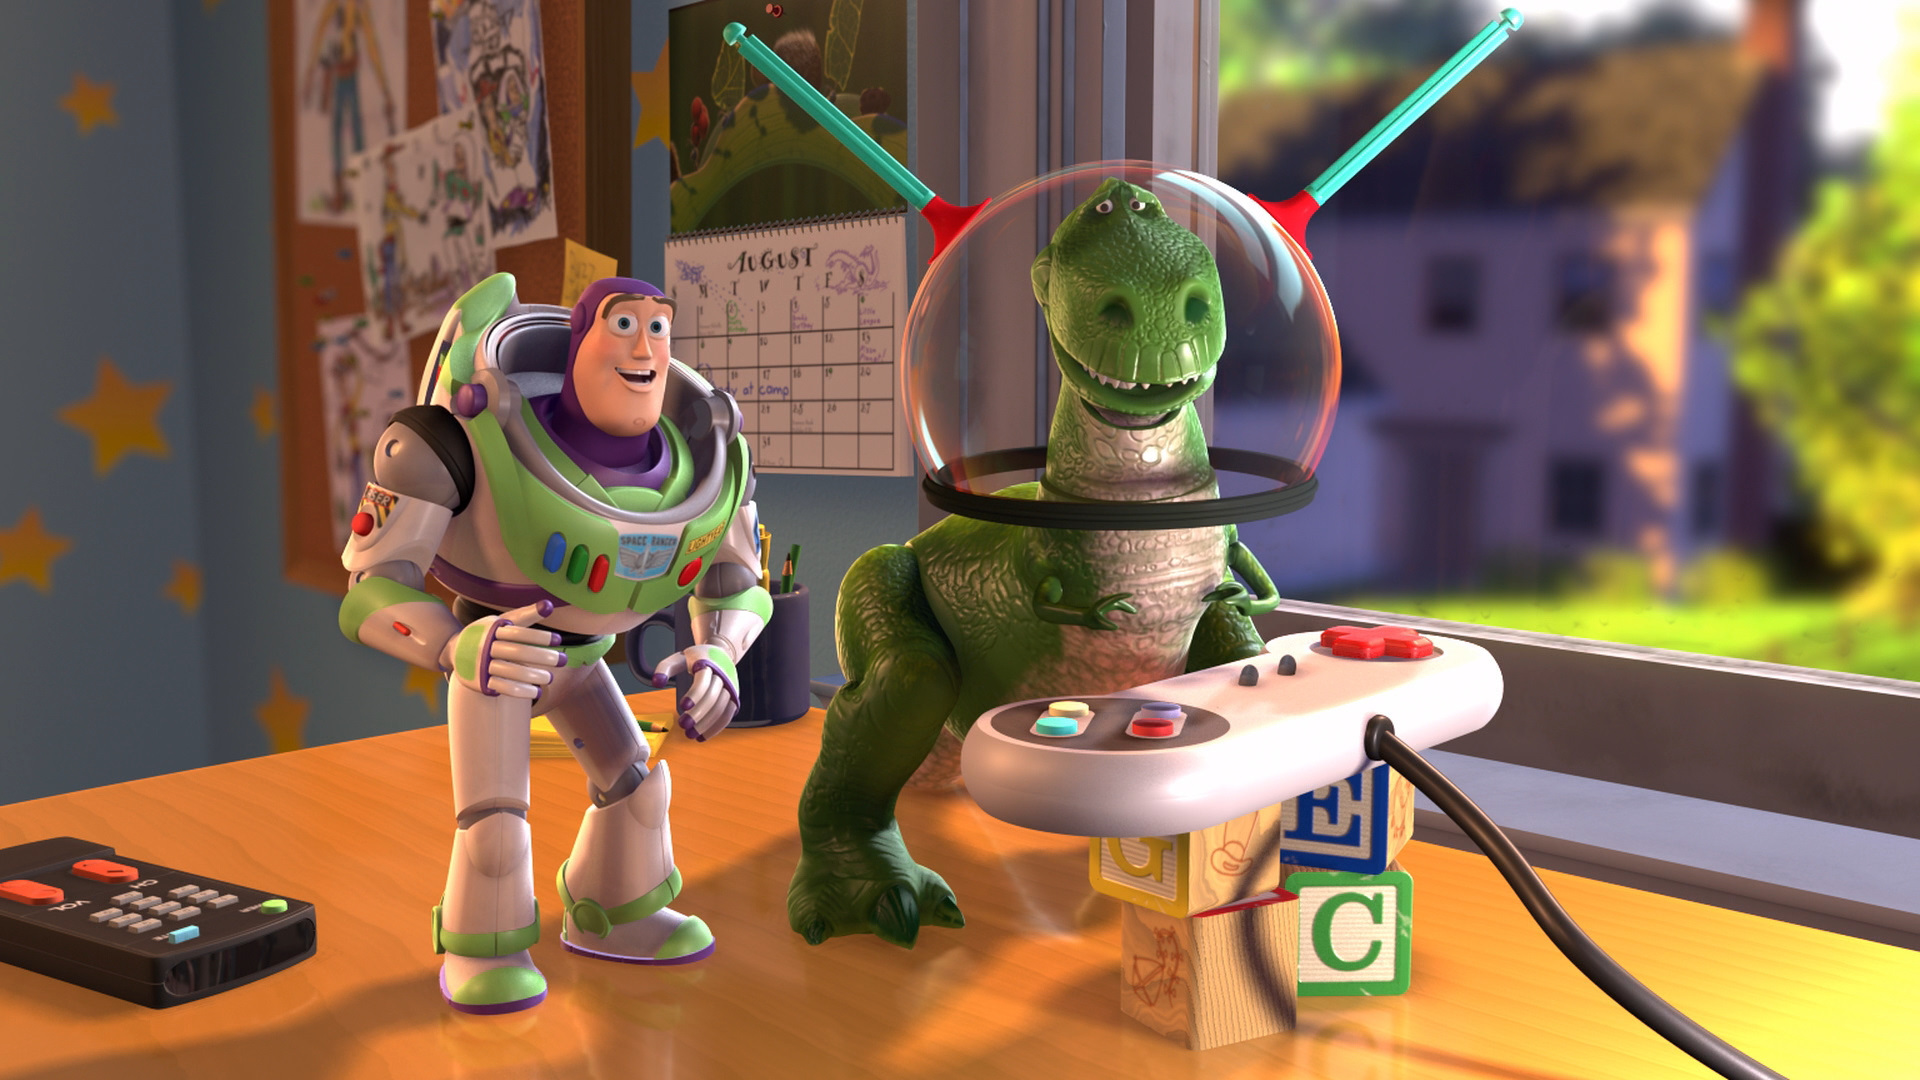 Toy story movie archives - Toy story wallpaper ...